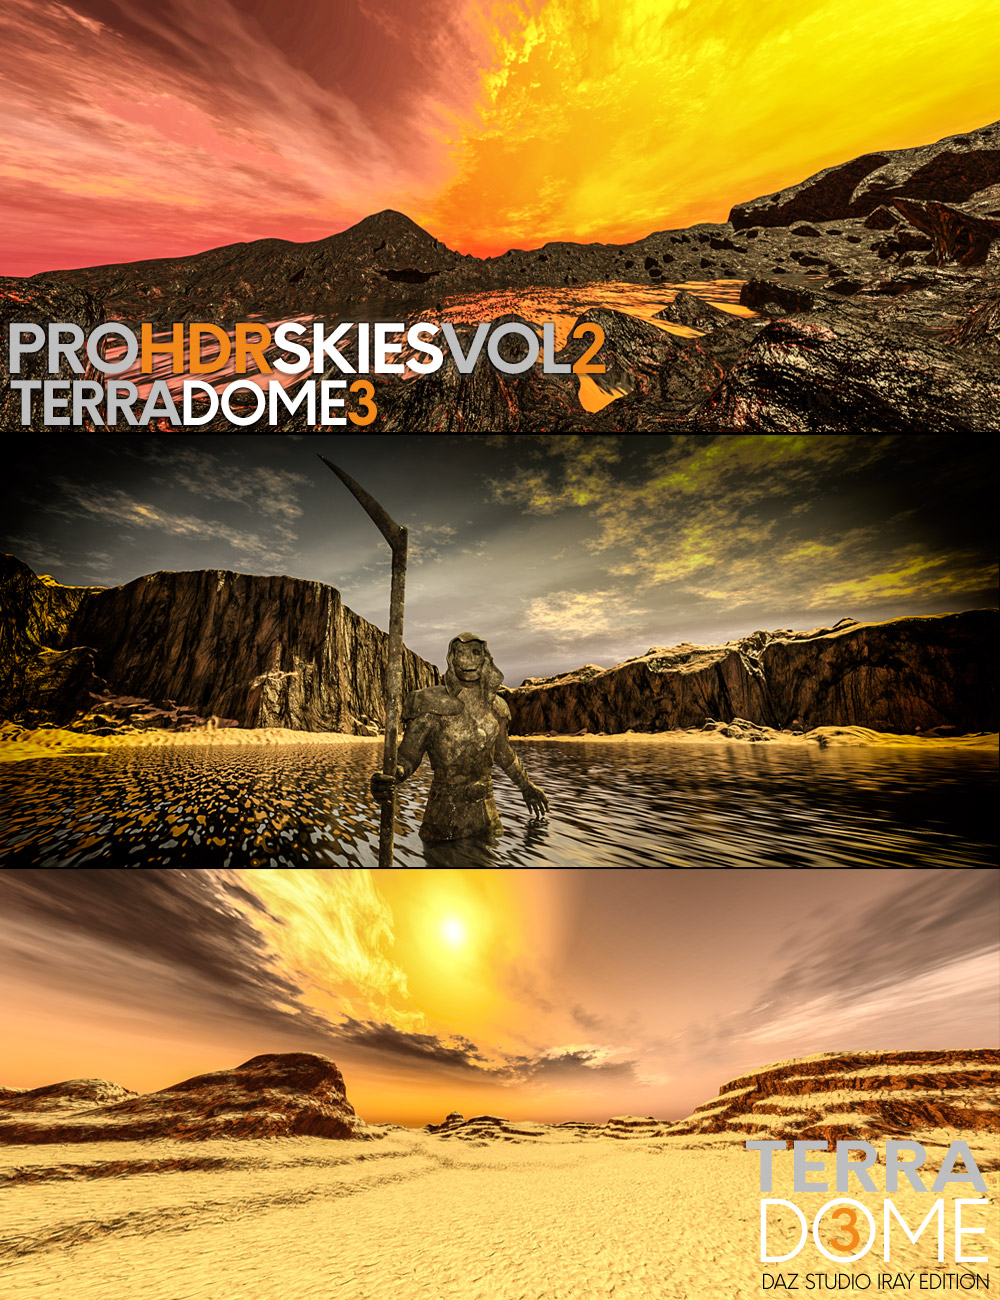 PRO-HDR-SKIES Vol_2 for TerraDome 3 by: Colm Jackson, 3D Models by Daz 3D